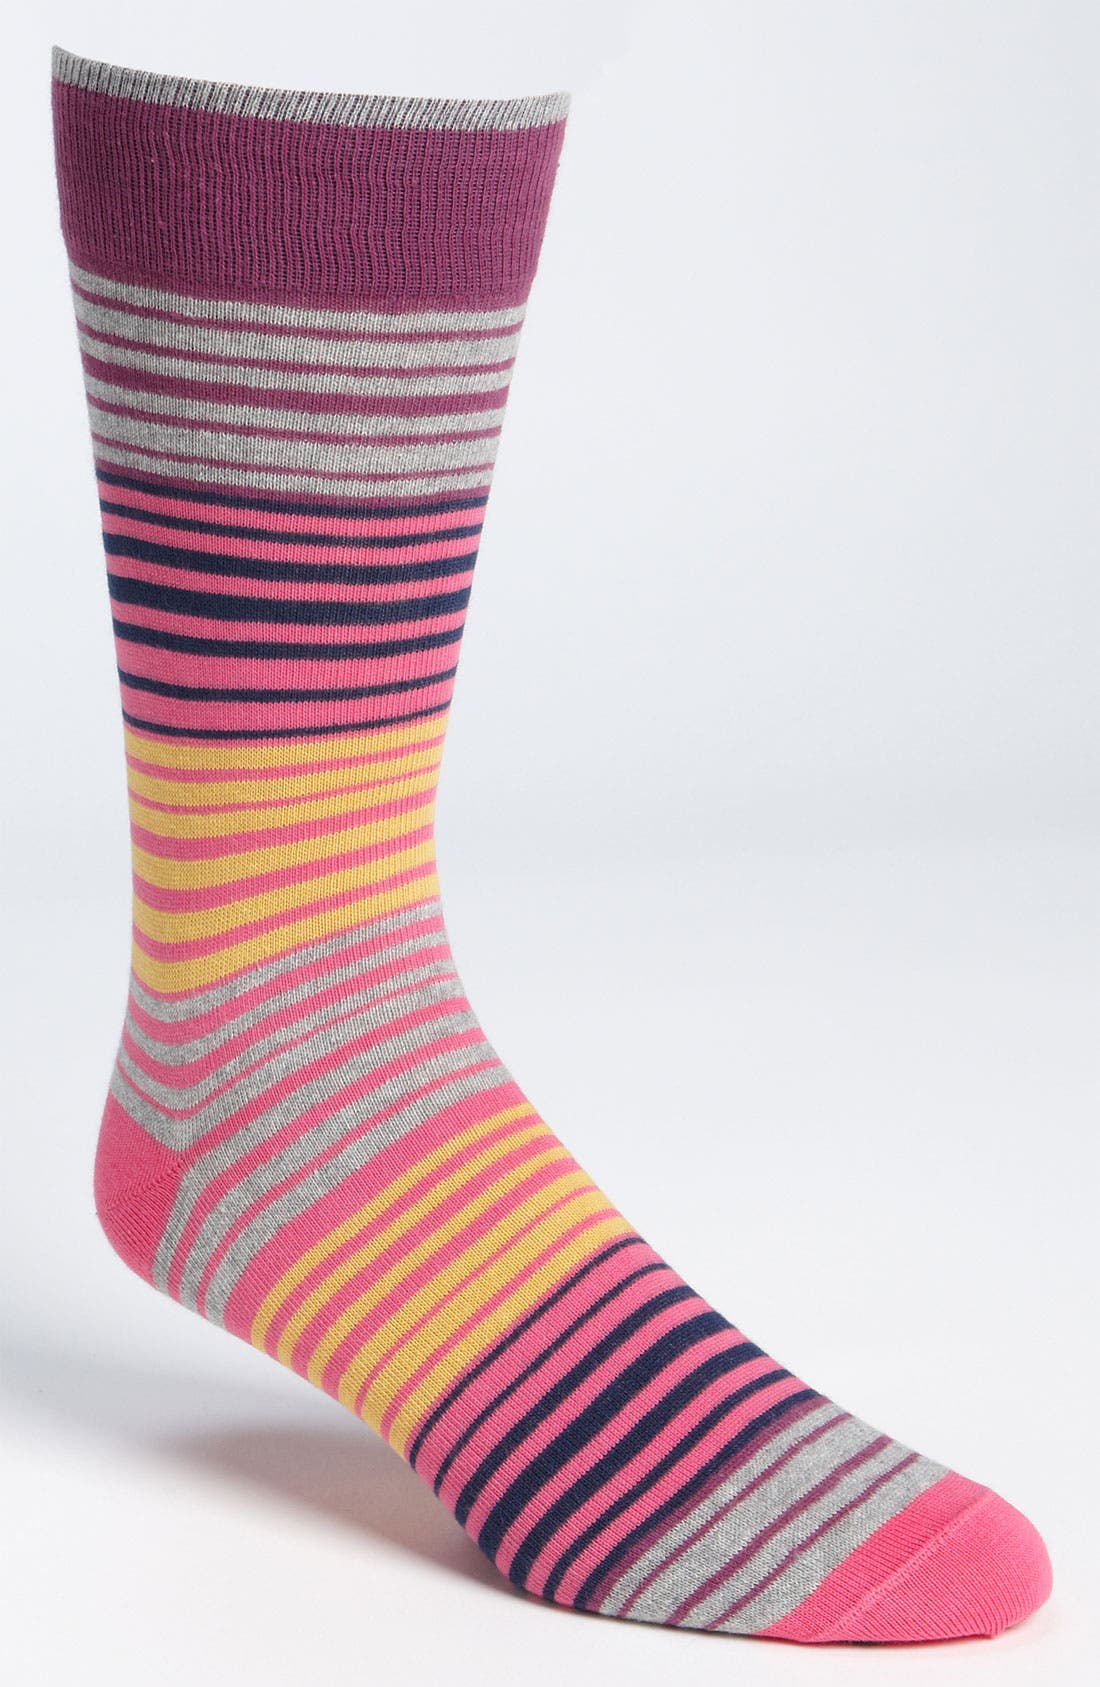 Alternate Image 1 Selected - Lorenzo Uomo Multi Stripe Socks